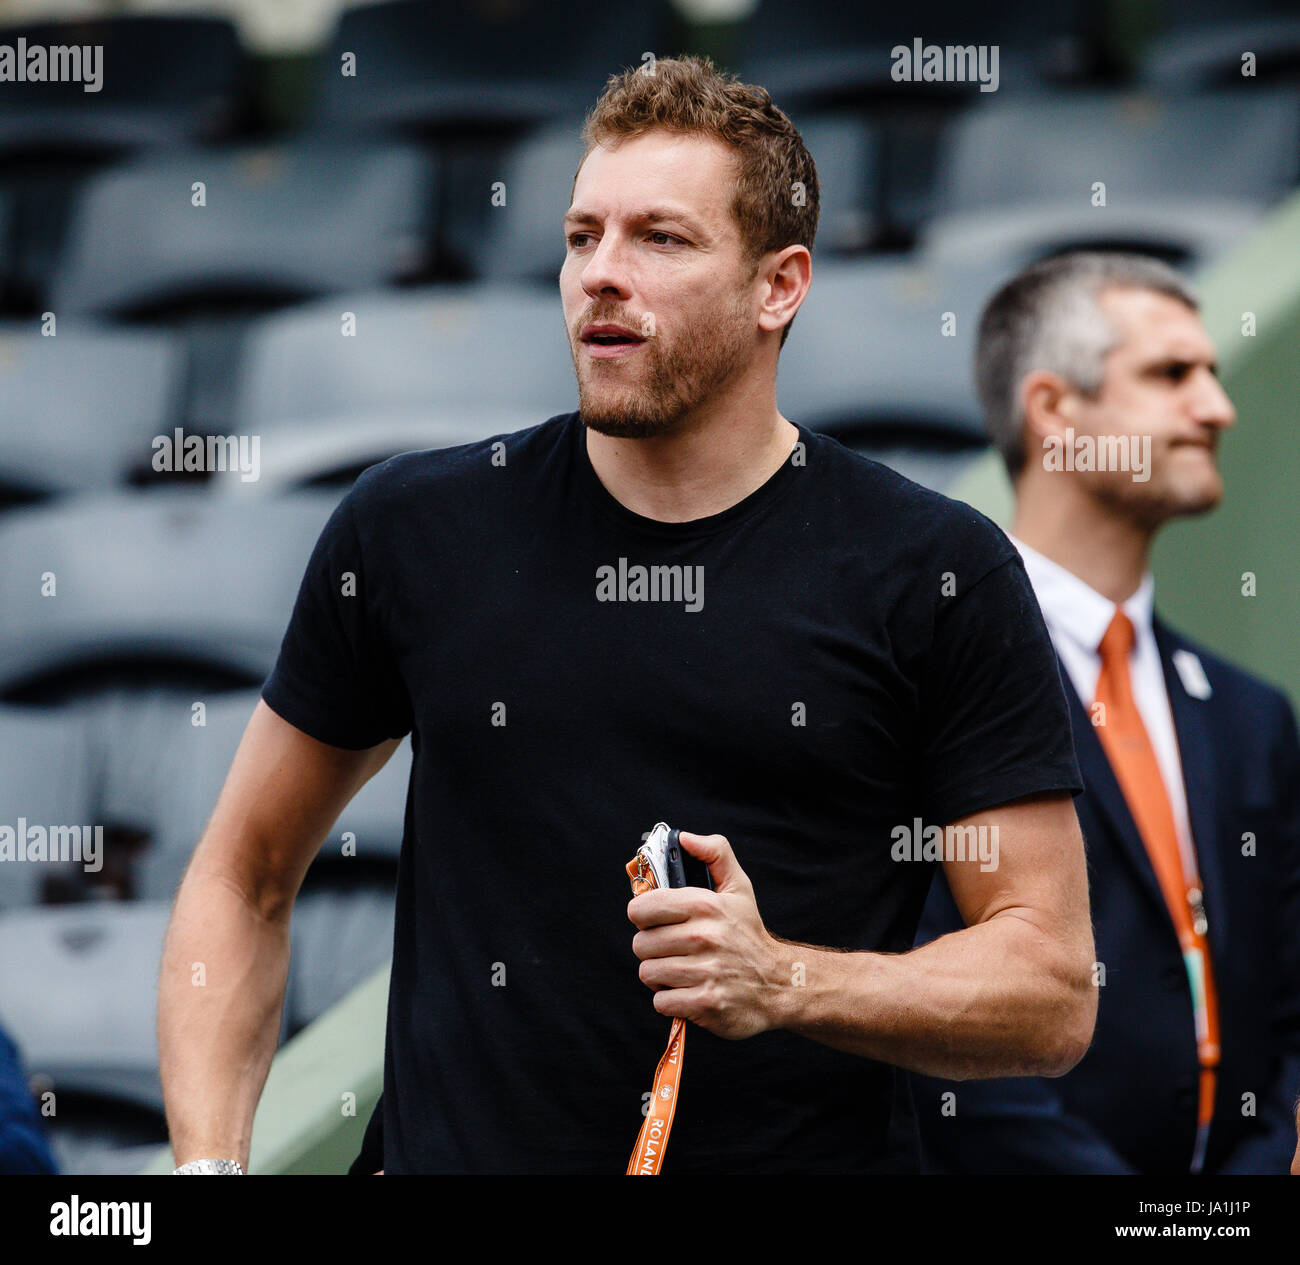 Paris, France, June 4th 2017: NBA-Pro David Lee  during the 4th round match of his girlfriend Caroline Wozniackis Stock Photo